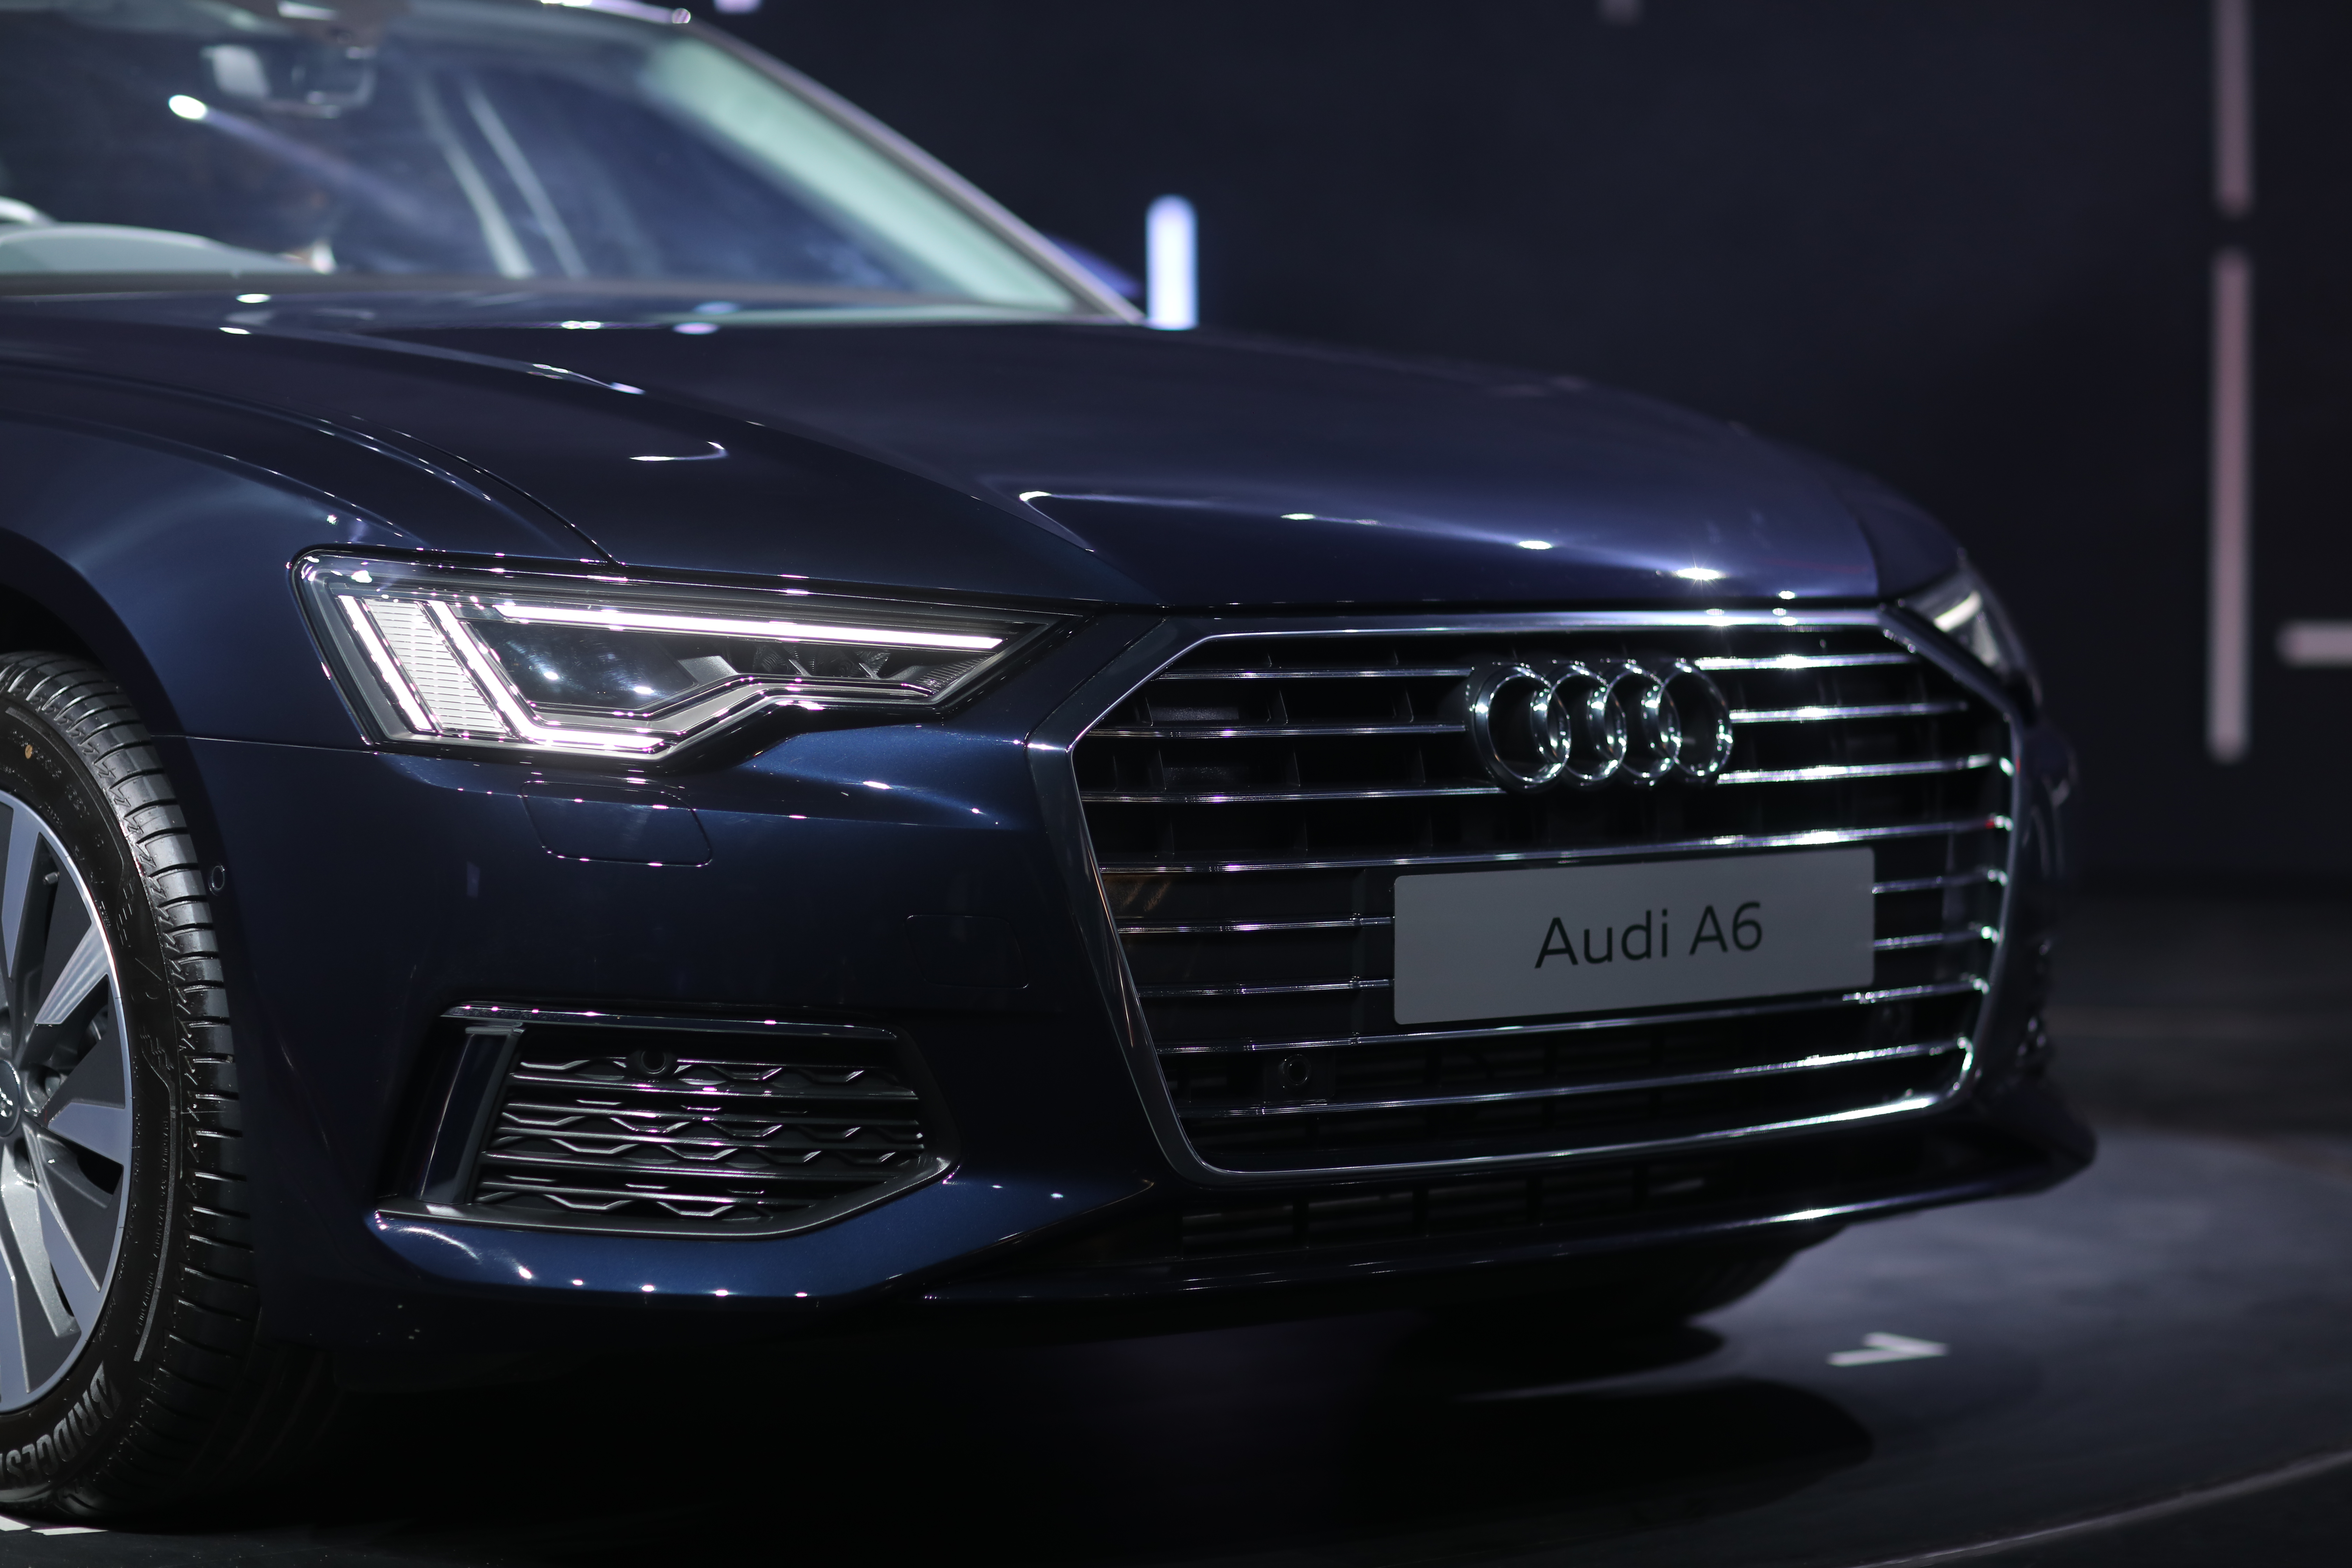 Exterior of the new Audi A6